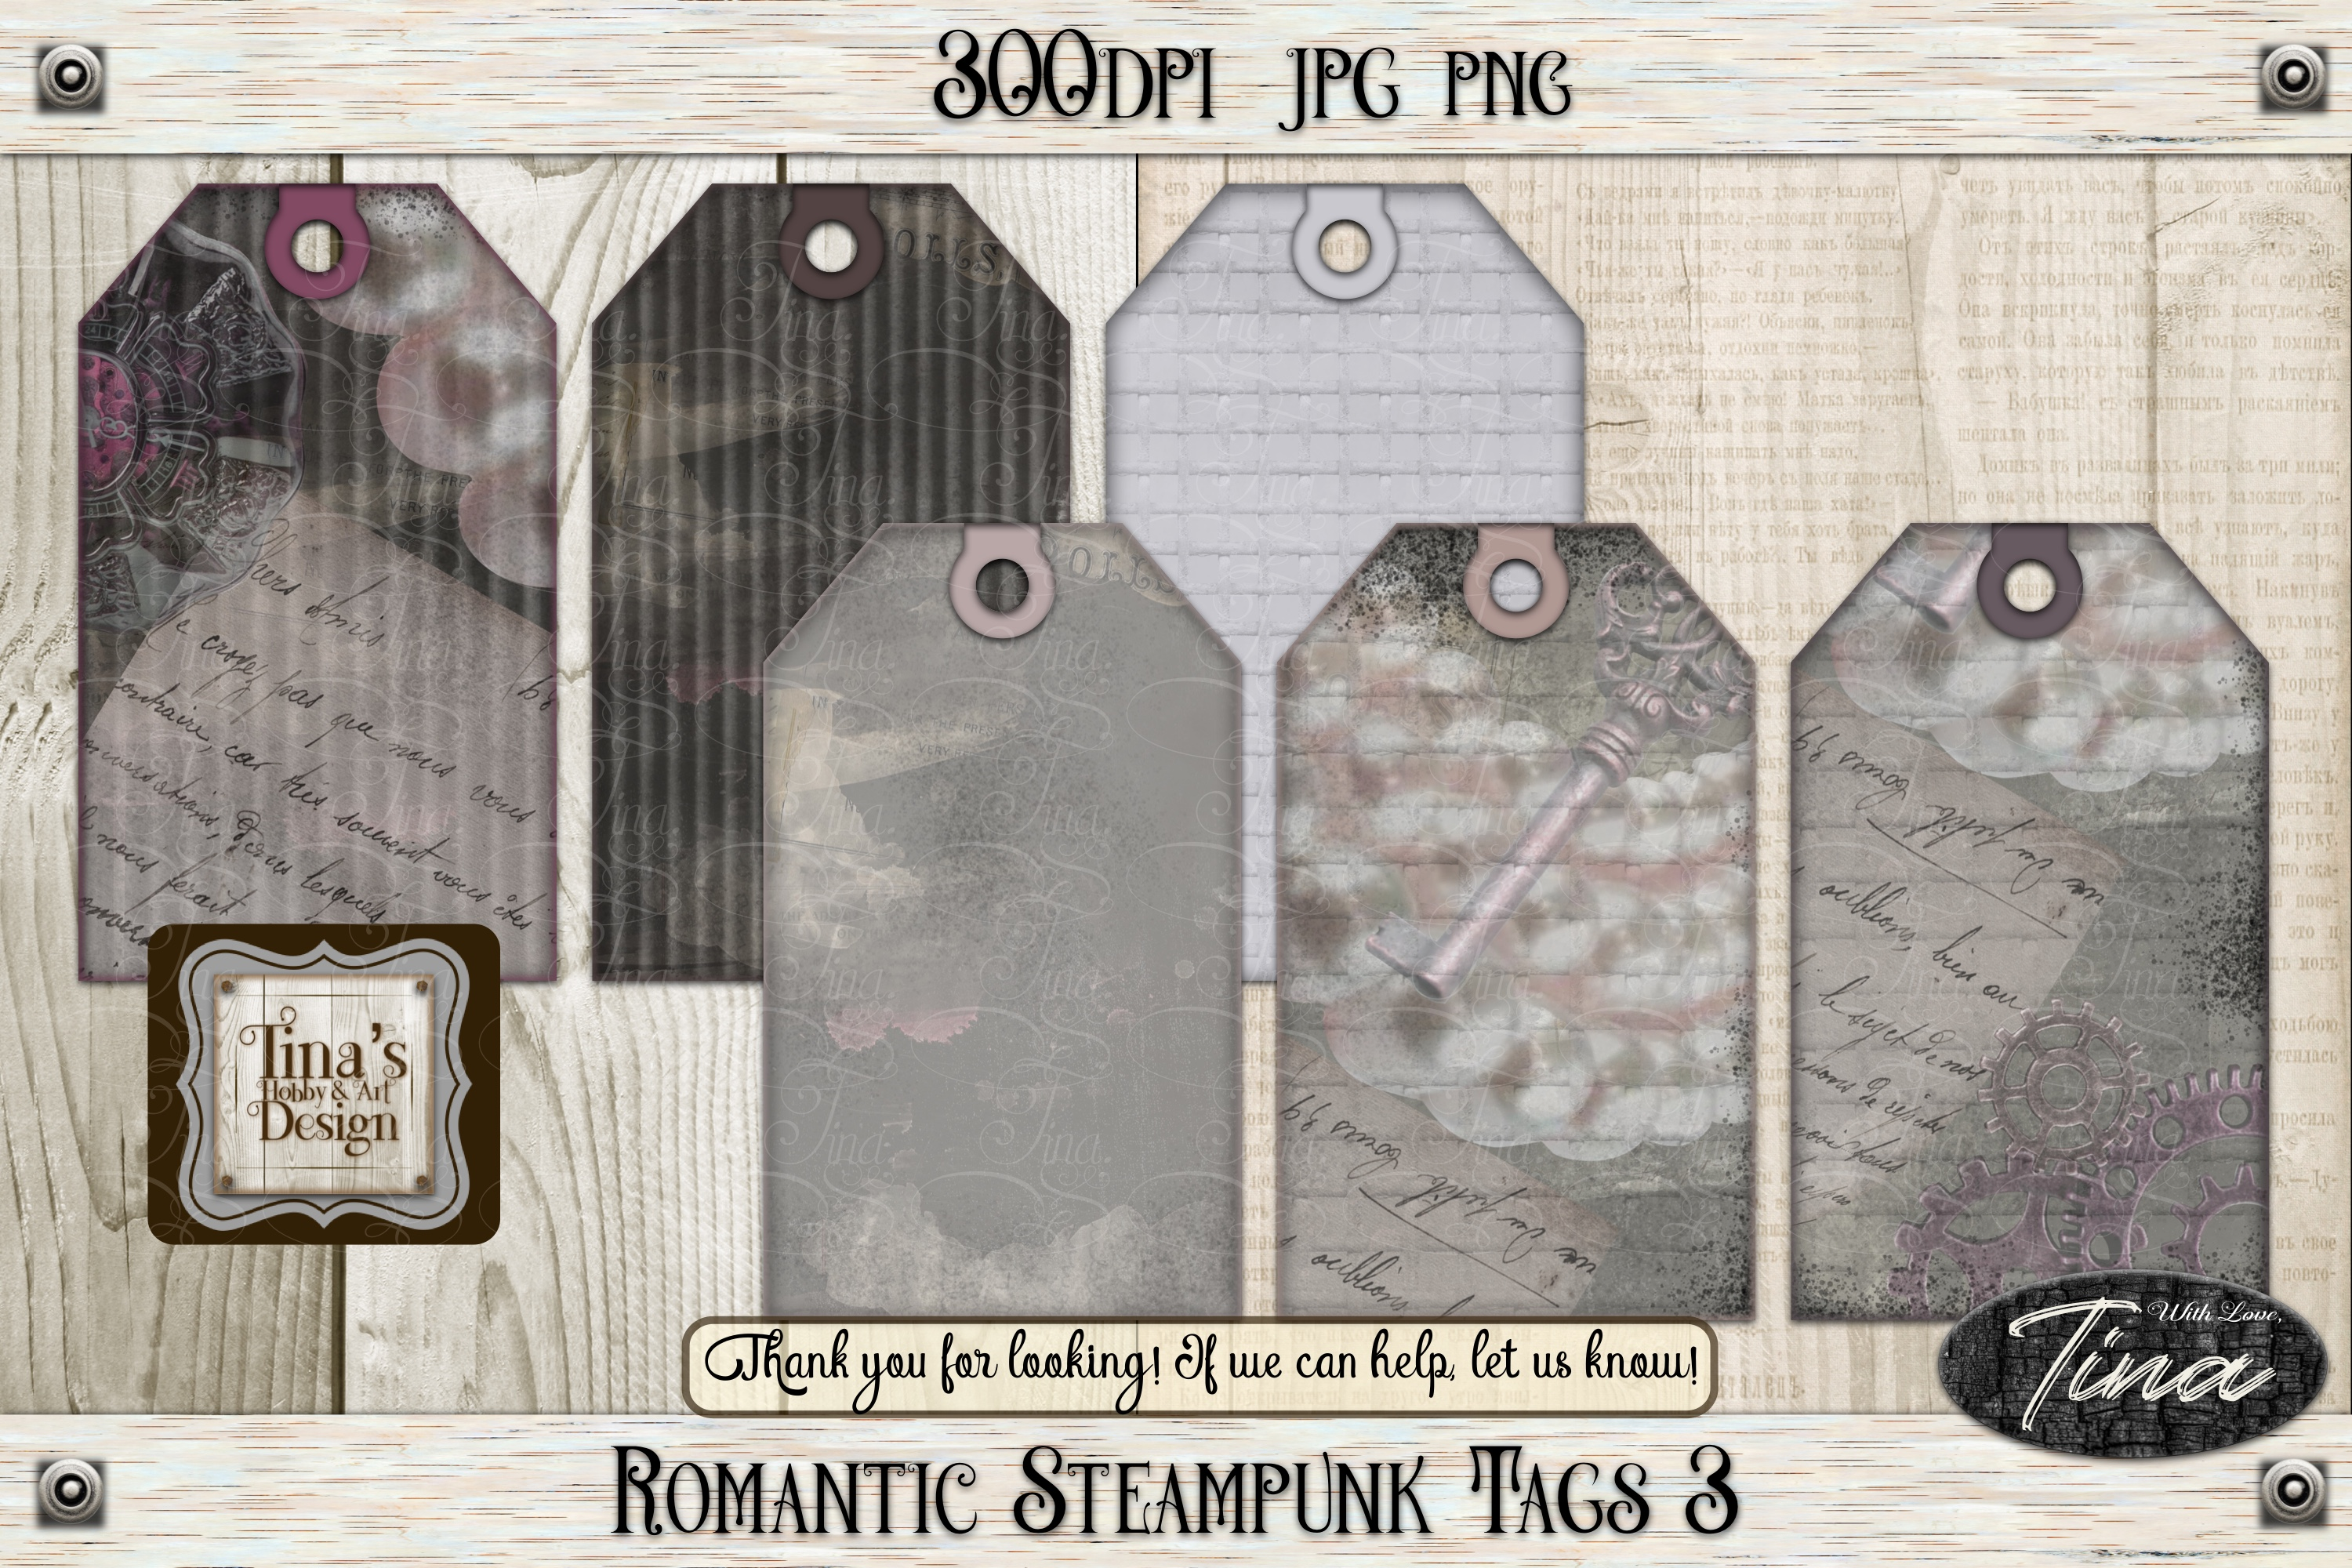 Romantic Steampunk Tags 2 Collage Mauve Grunge 101918RST2 example image 9